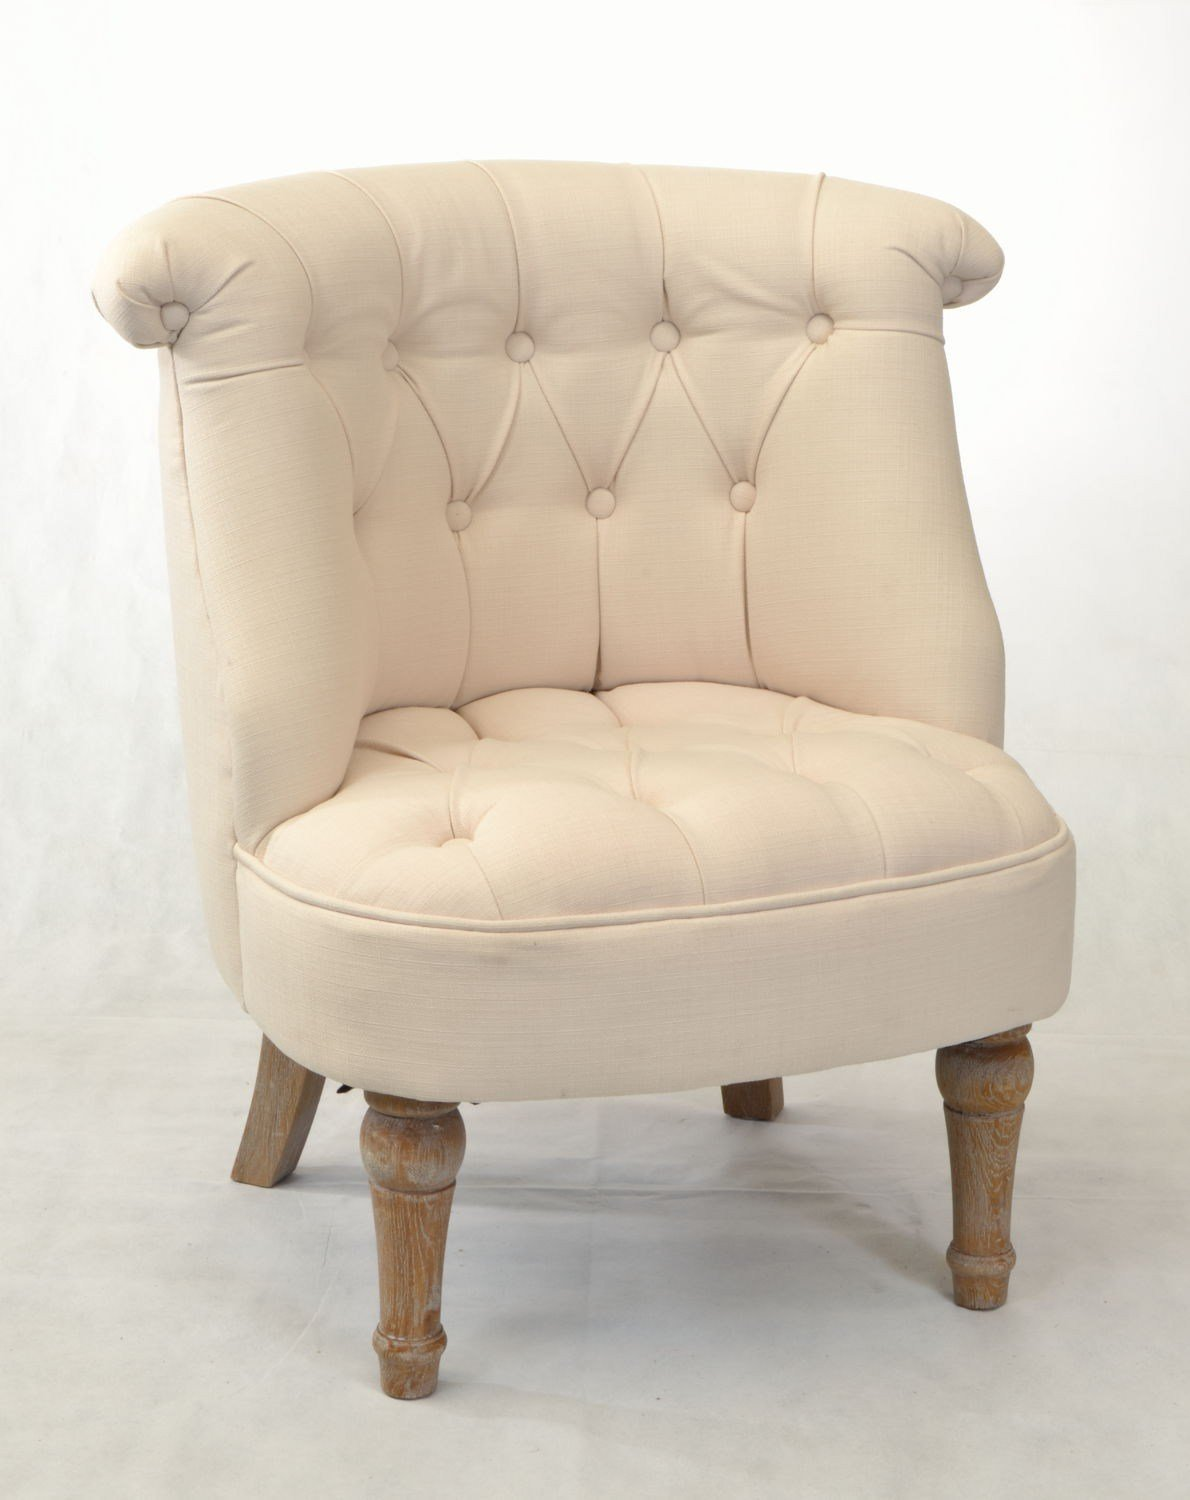 Best Buy A Small Bedroom Chair For An Accent Piece To Your Room With Pictures